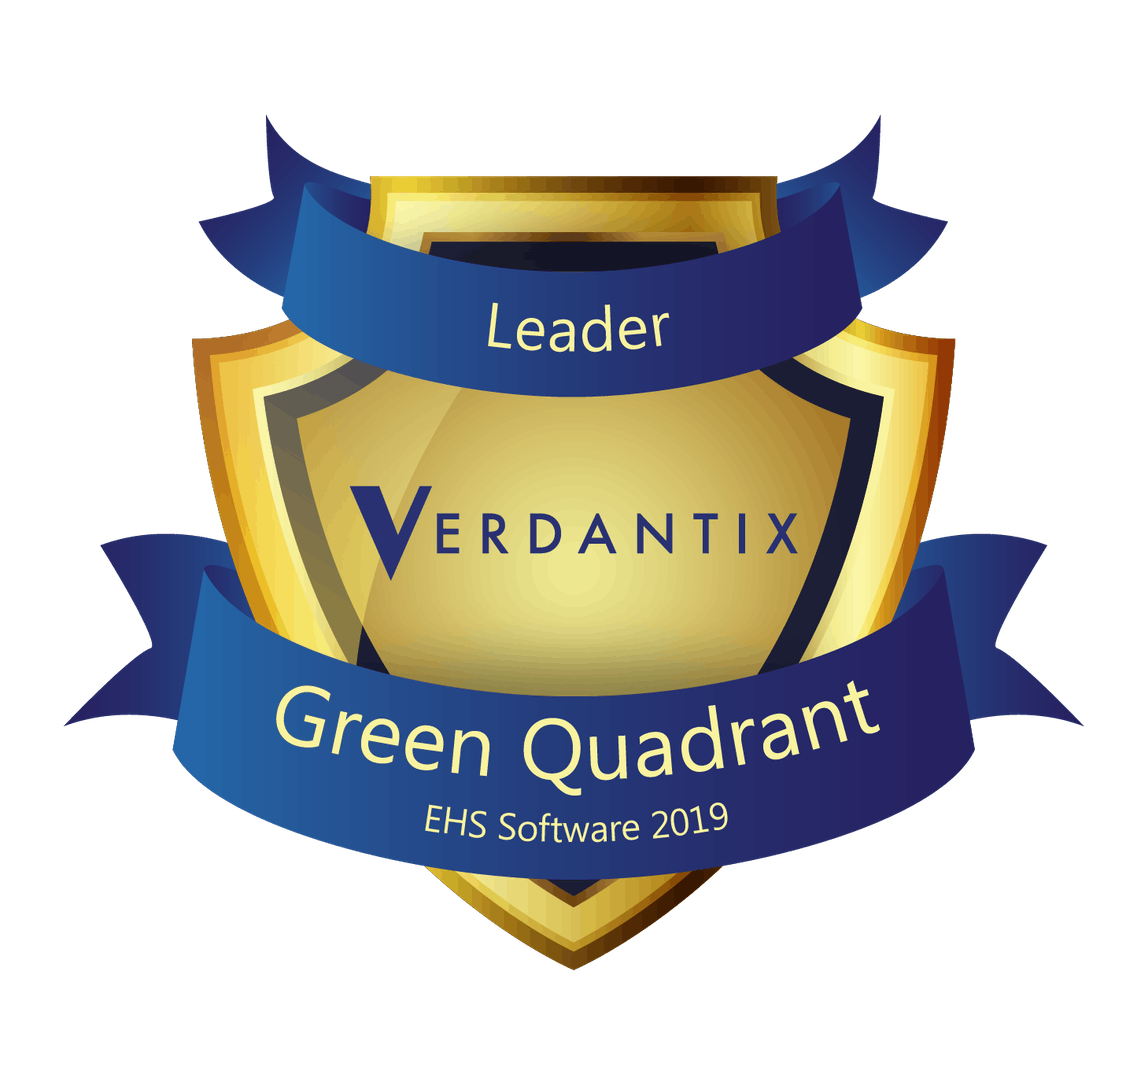 Green-Quadrant-EHS-Software-2019_Leader